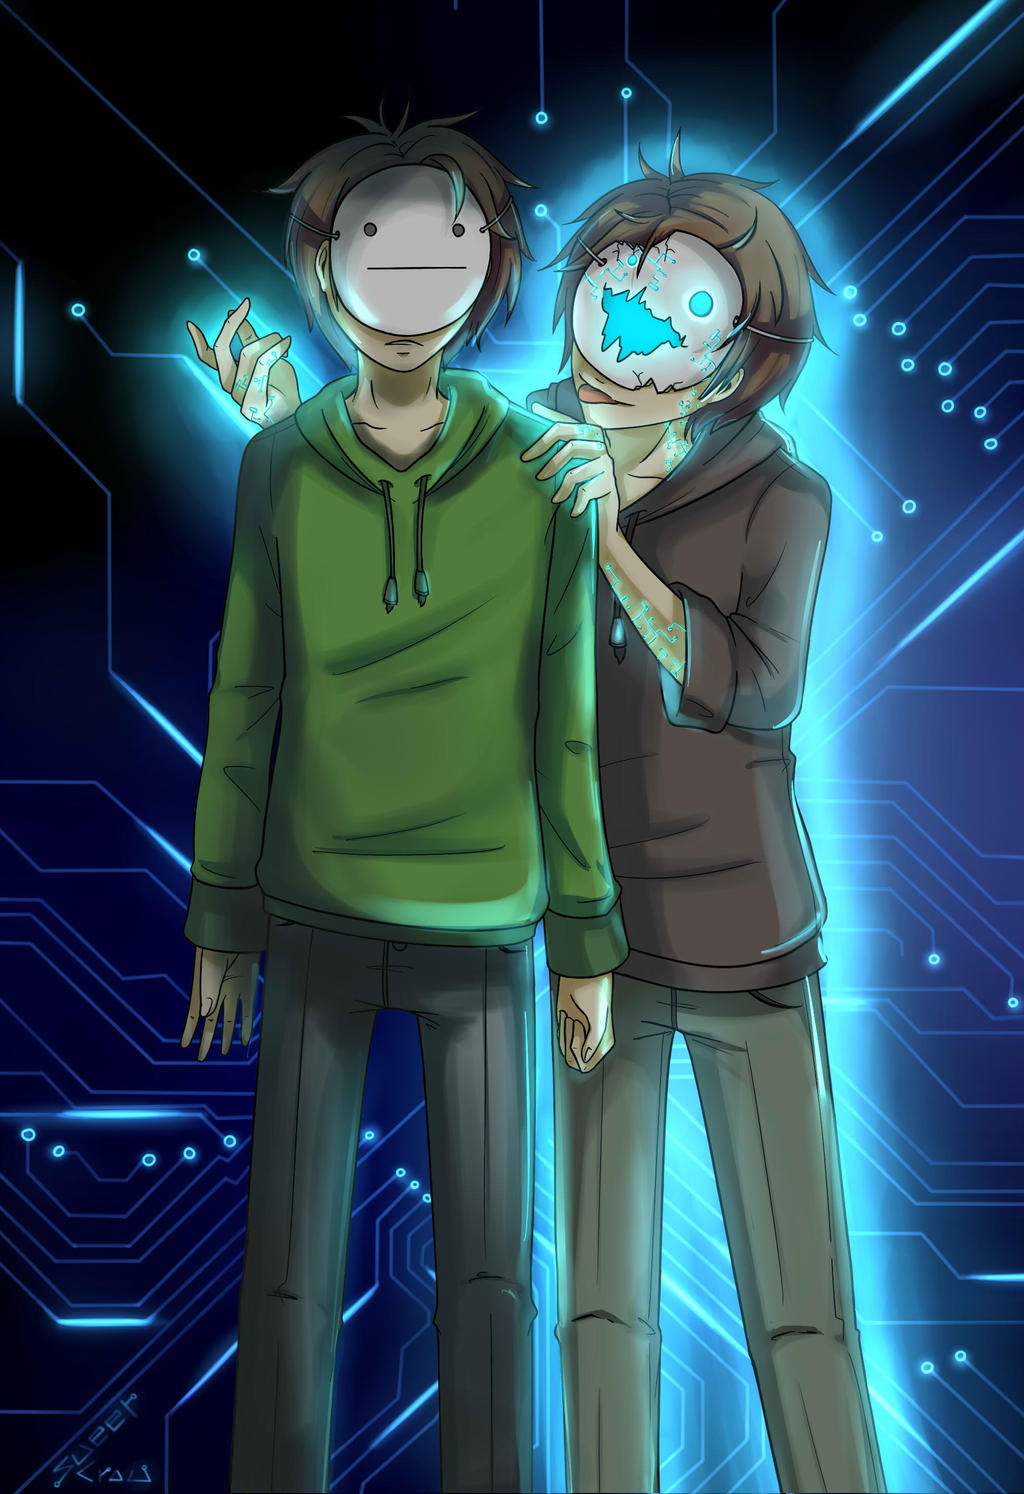 VIrUs! cRY vs. Cry by Sweet-Crow on DeviantArt